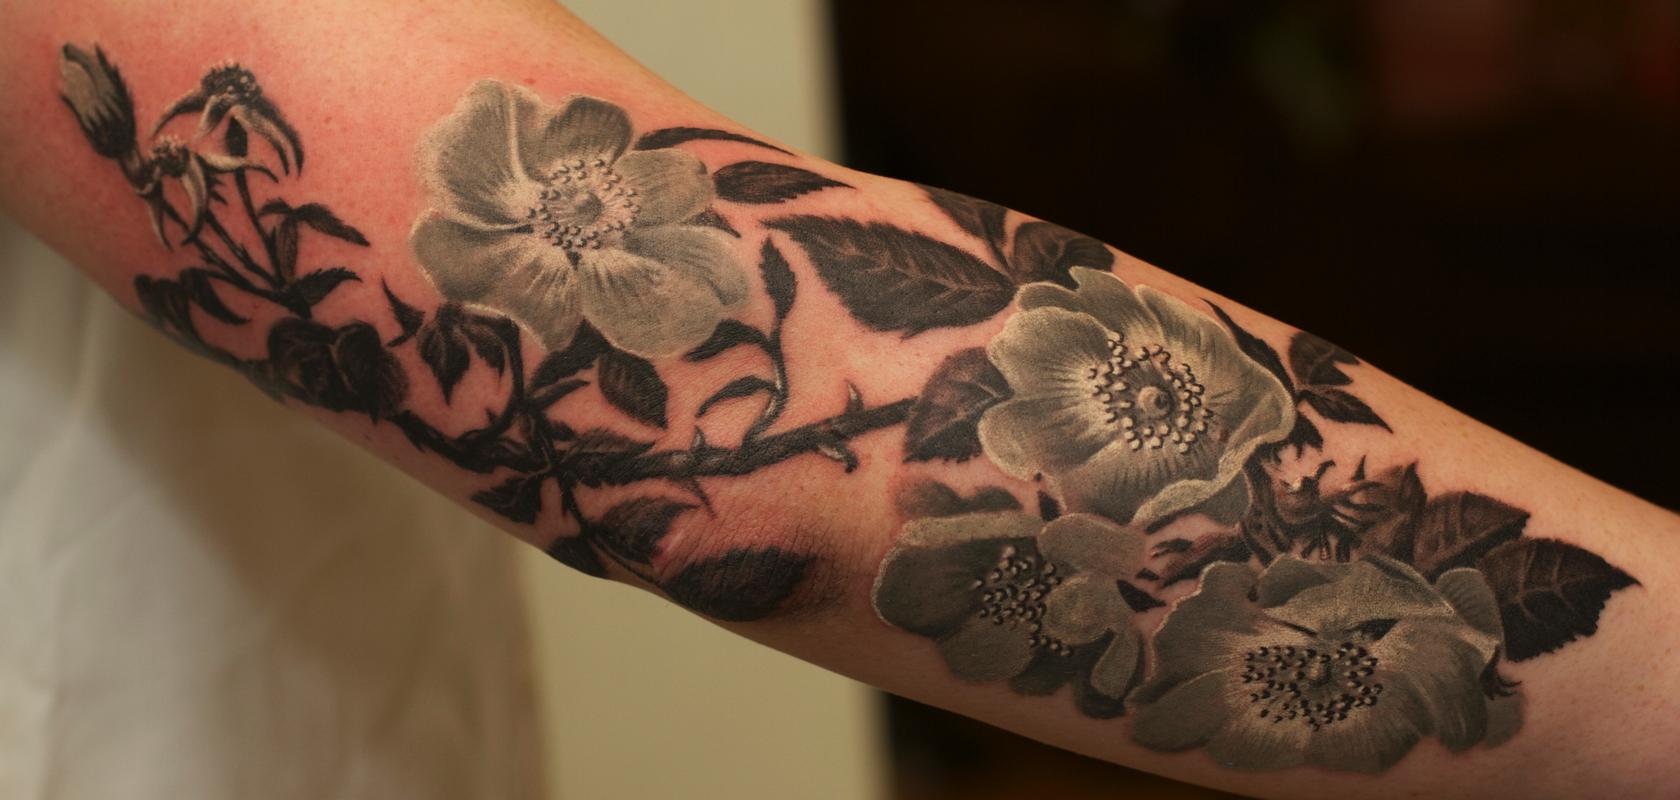 Black and grey flowers tattoo by remis tattoo tattoonow for Tattoo design black and gray